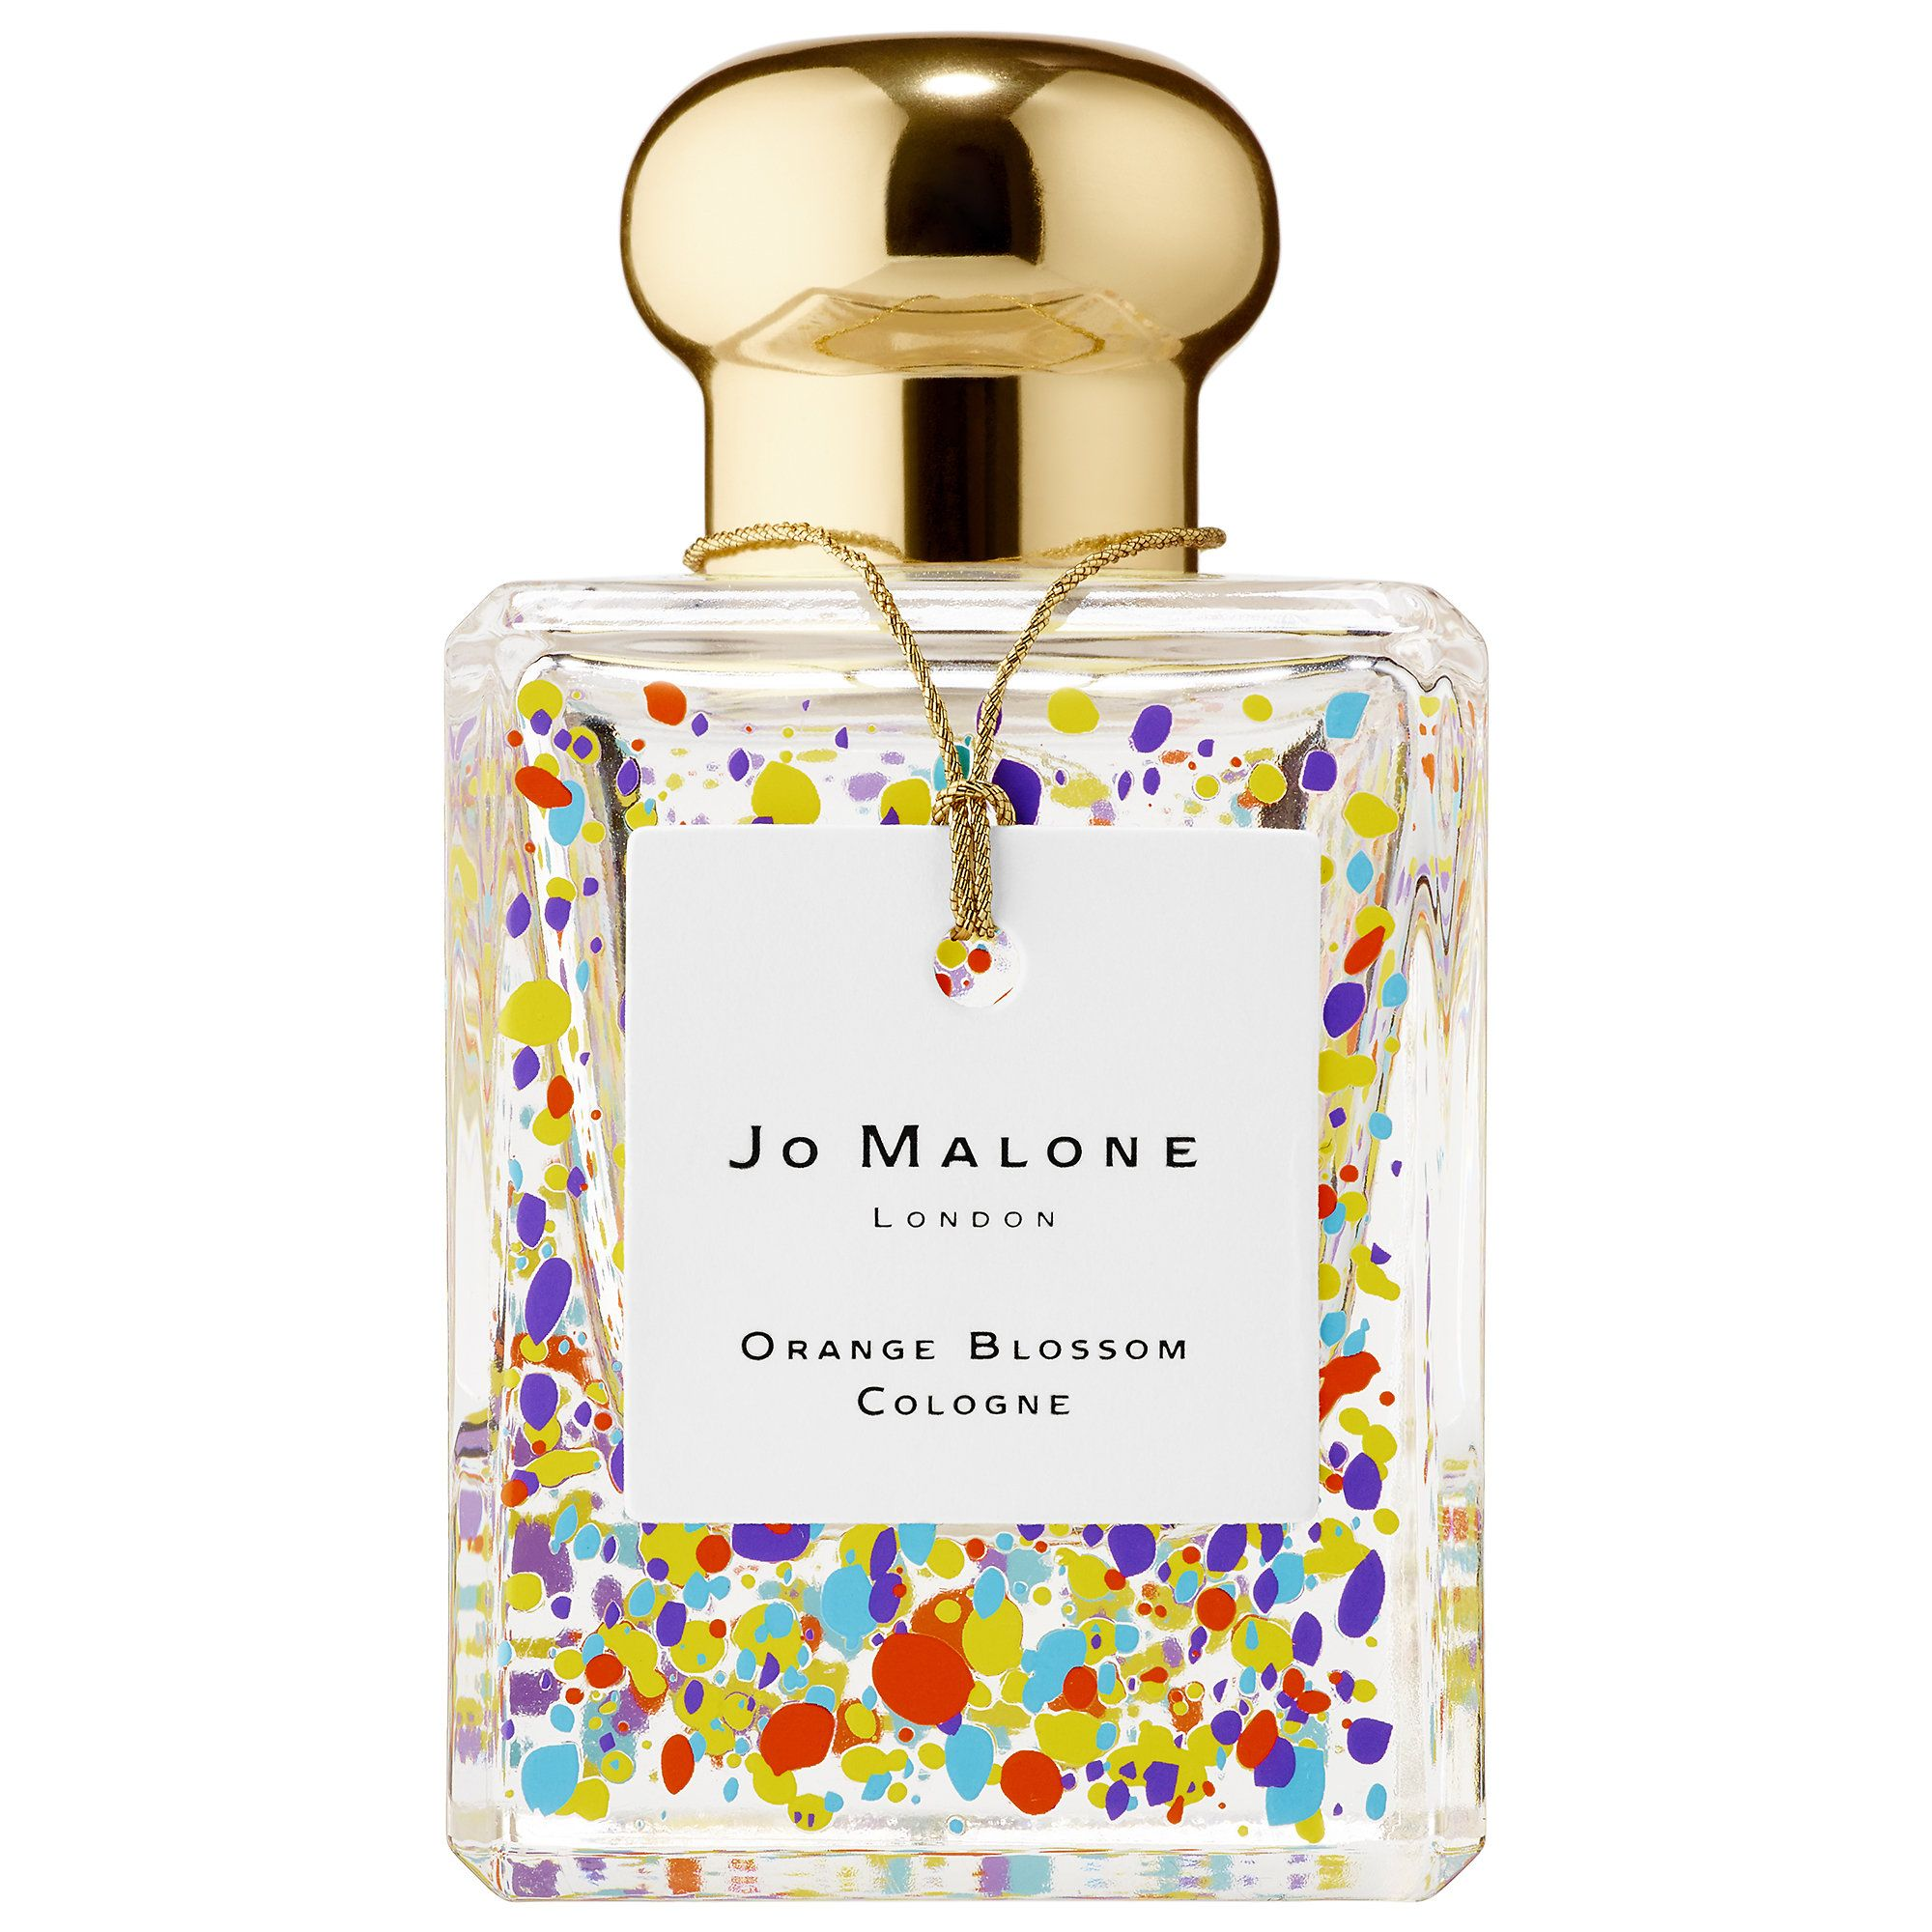 c78a6747d Shop Poptastic Orange Blossom Cologne by Jo Malone London at Sephora ...